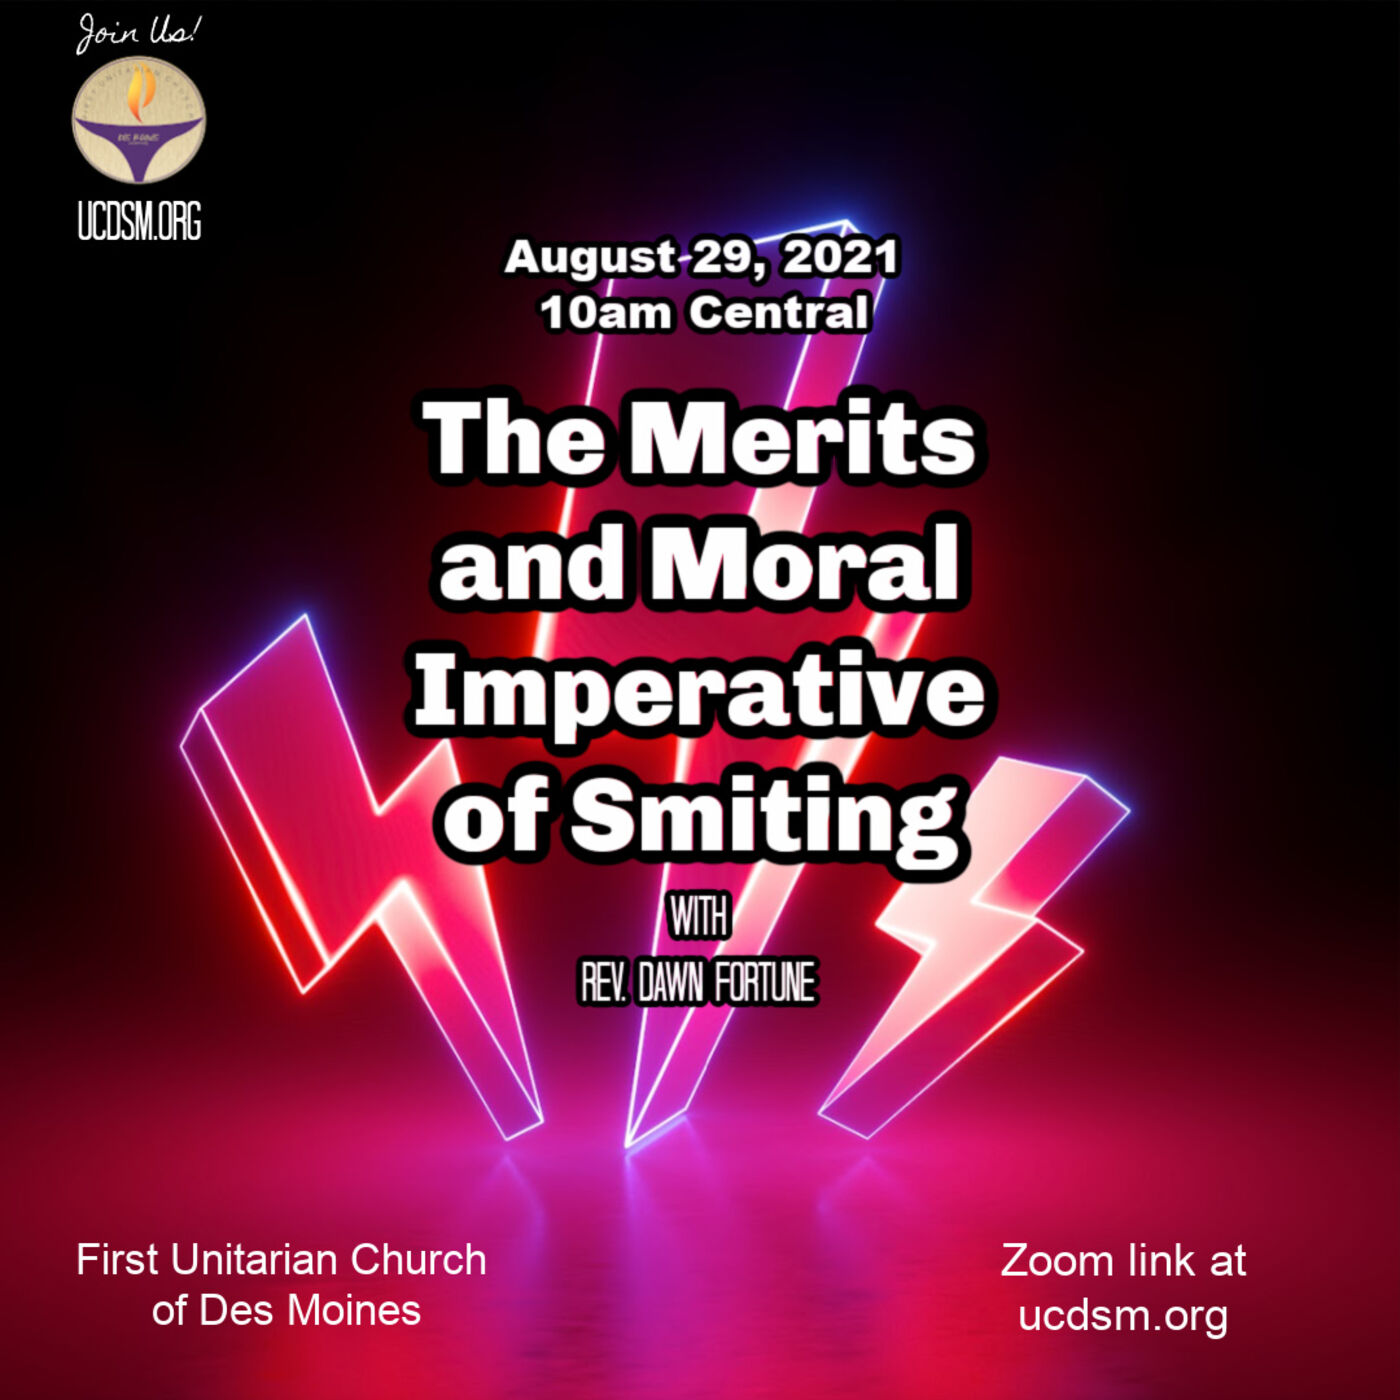 The Merits And Moral Imperative of Smiting